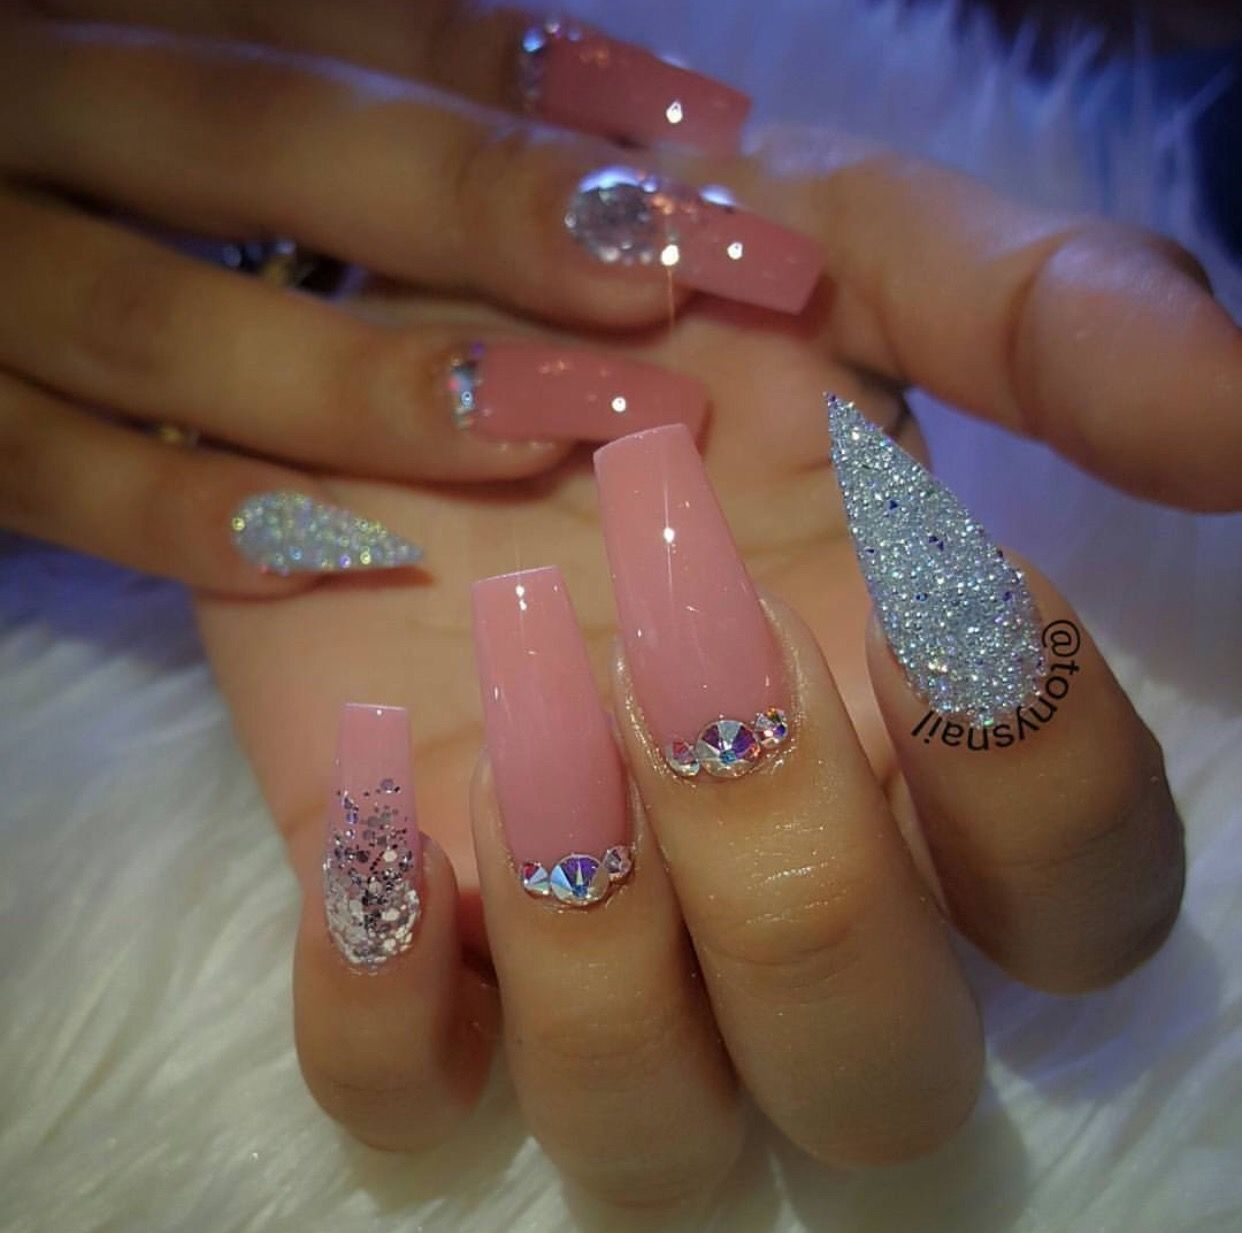 Pin by Karla Campo on Nails | Pinterest | Instagram, Nail nail and ...